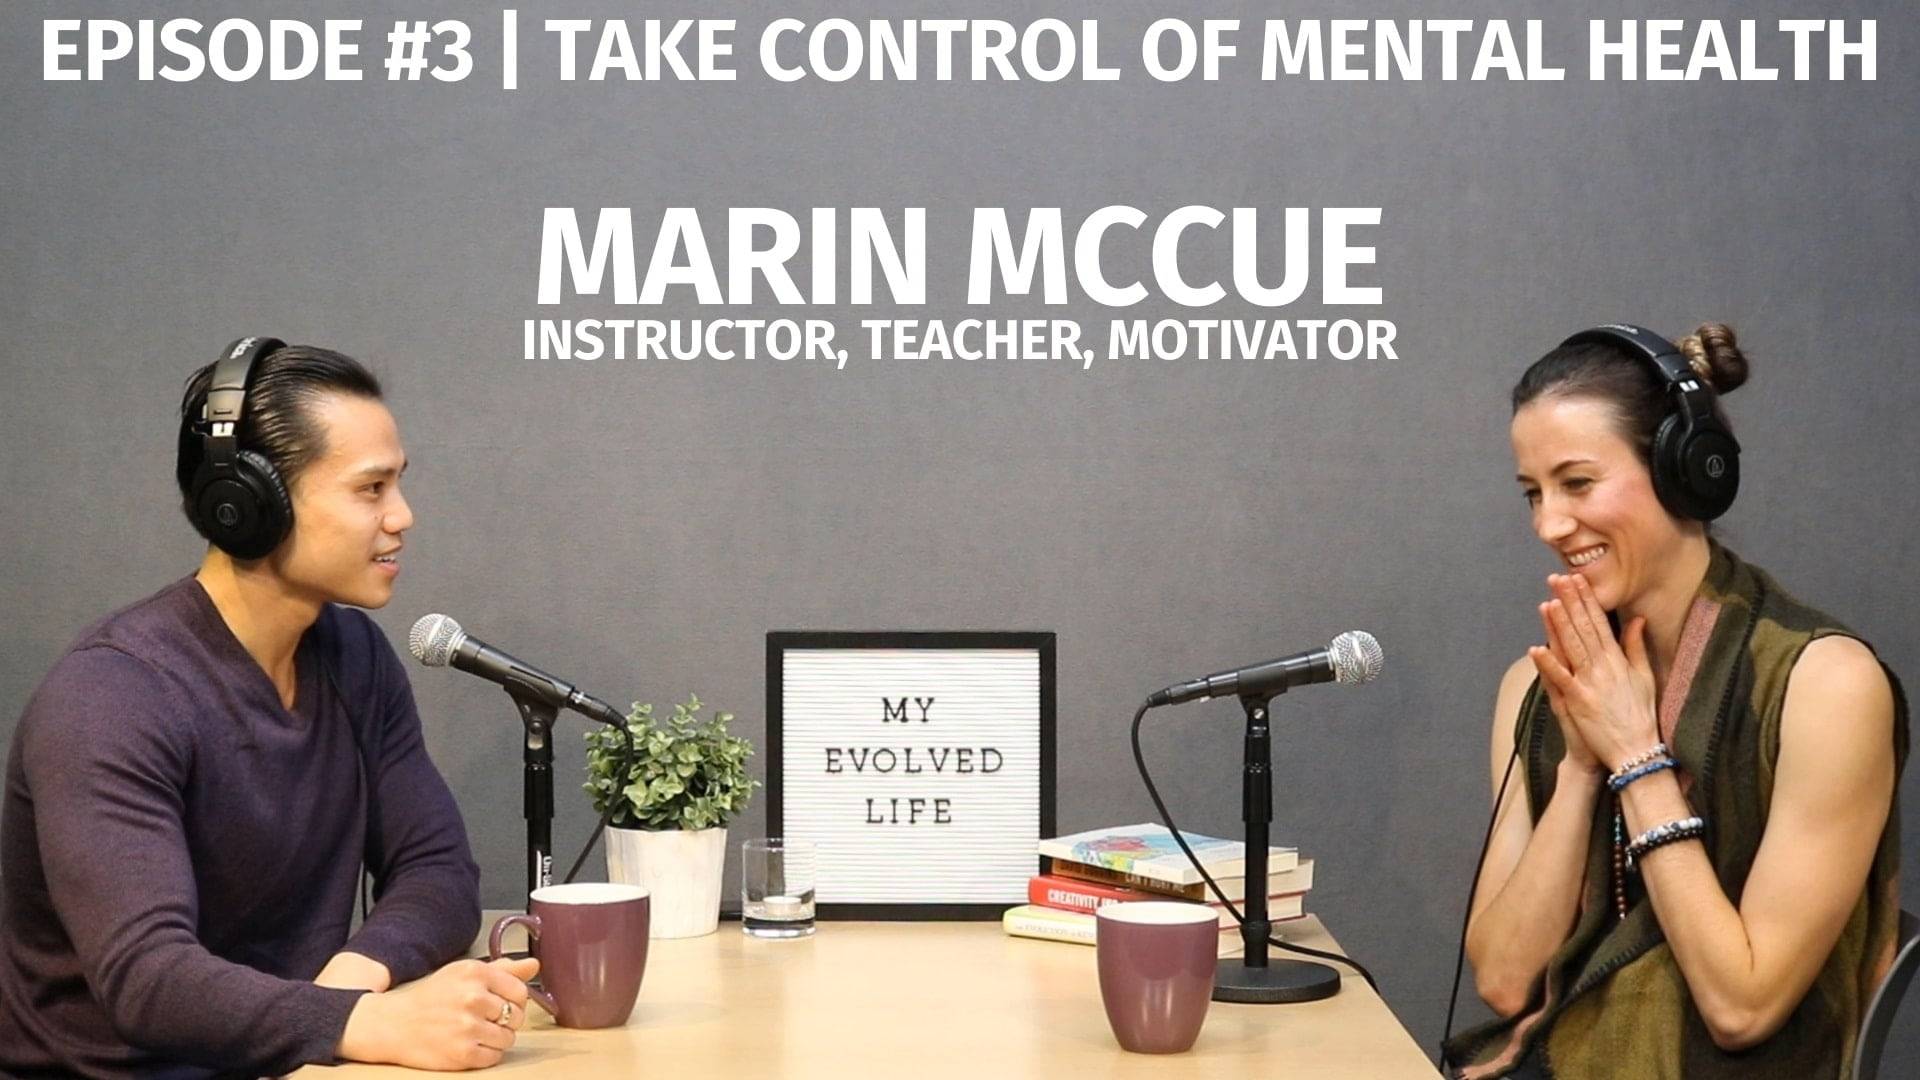 My Evolved Life  Episode #3 - Marin McCue - Take Control of Mental Health